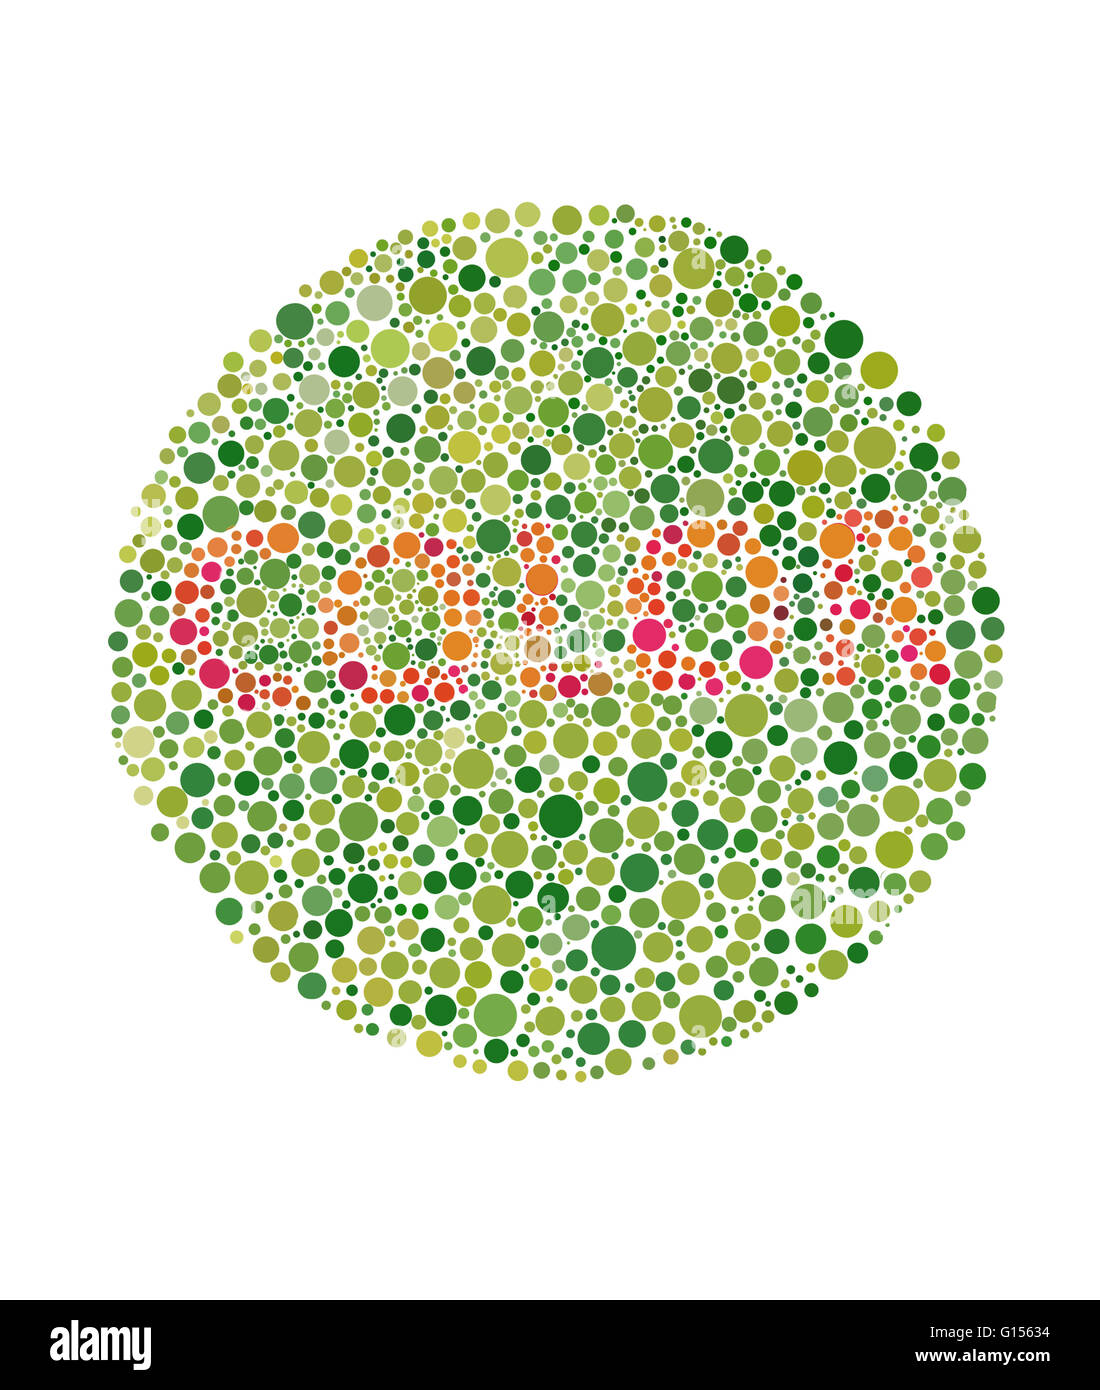 Color Blindness Test Cut Out Stock Images & Pictures - Alamy